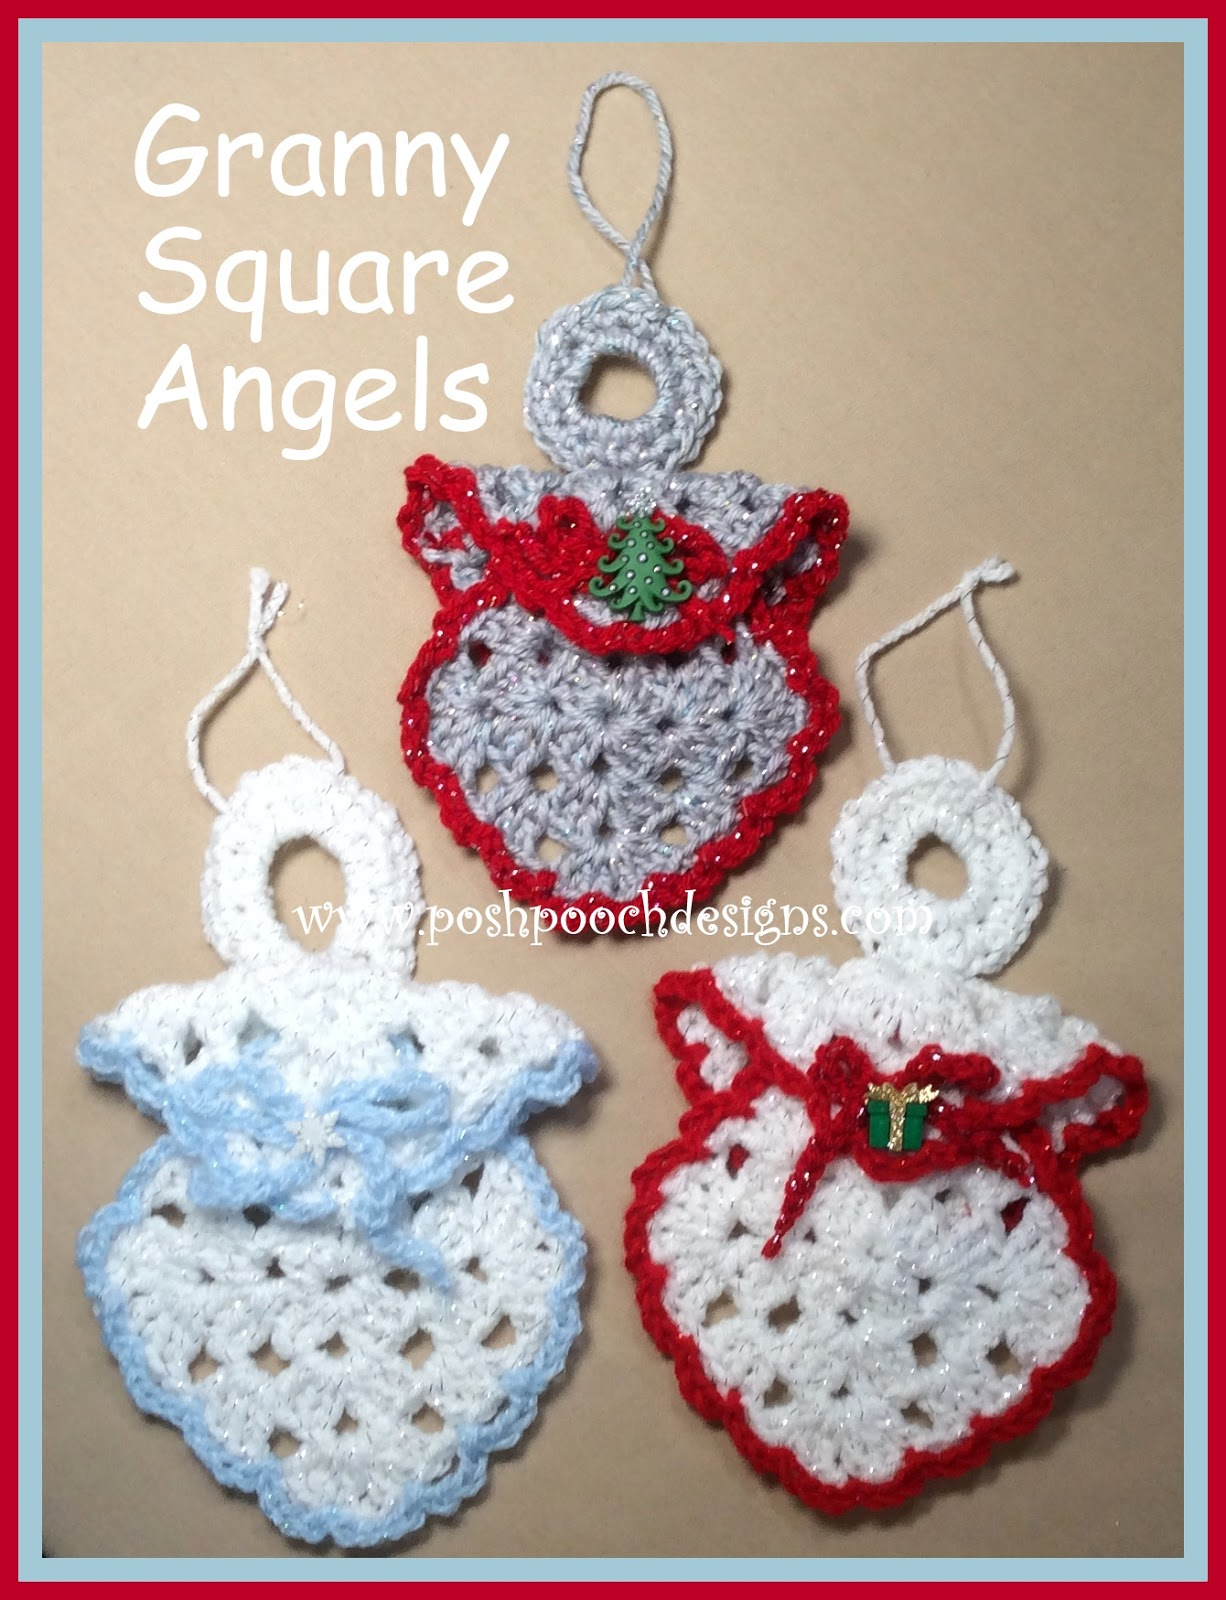 Posh pooch designs dog clothes granny square angel ornament granny square angel ornament crochet pattern bankloansurffo Images